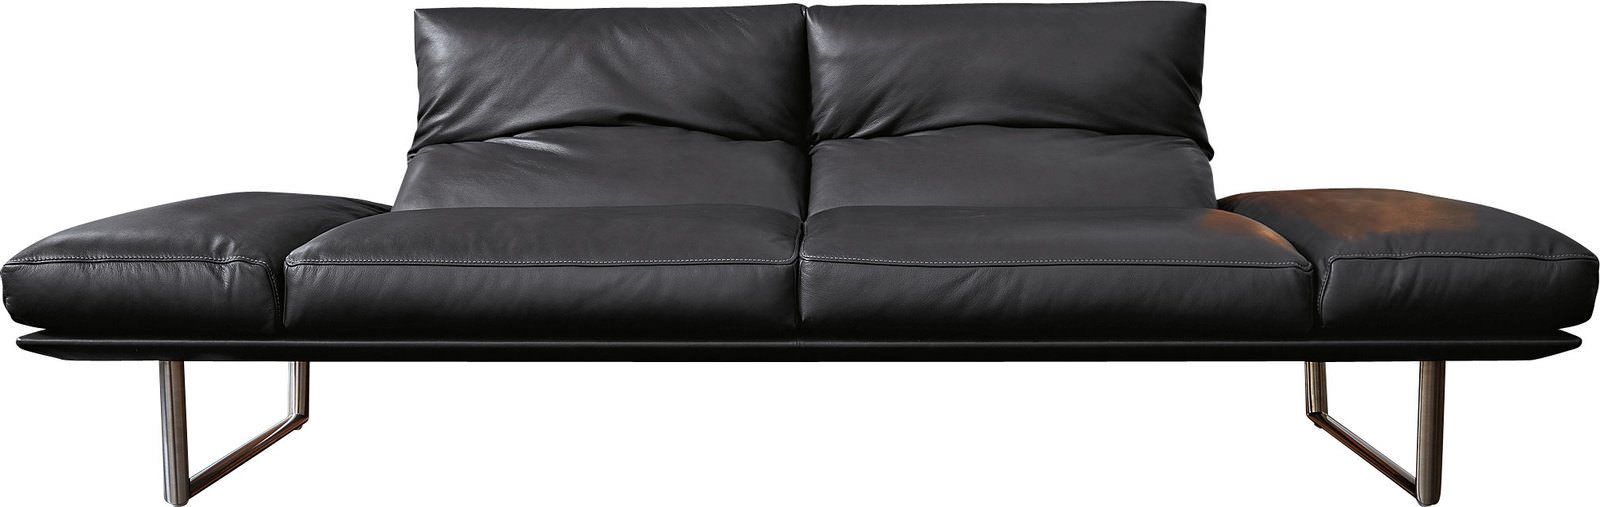 musterring sofa leder latest musterring linea designer leder sofa with musterring sofa leder. Black Bedroom Furniture Sets. Home Design Ideas